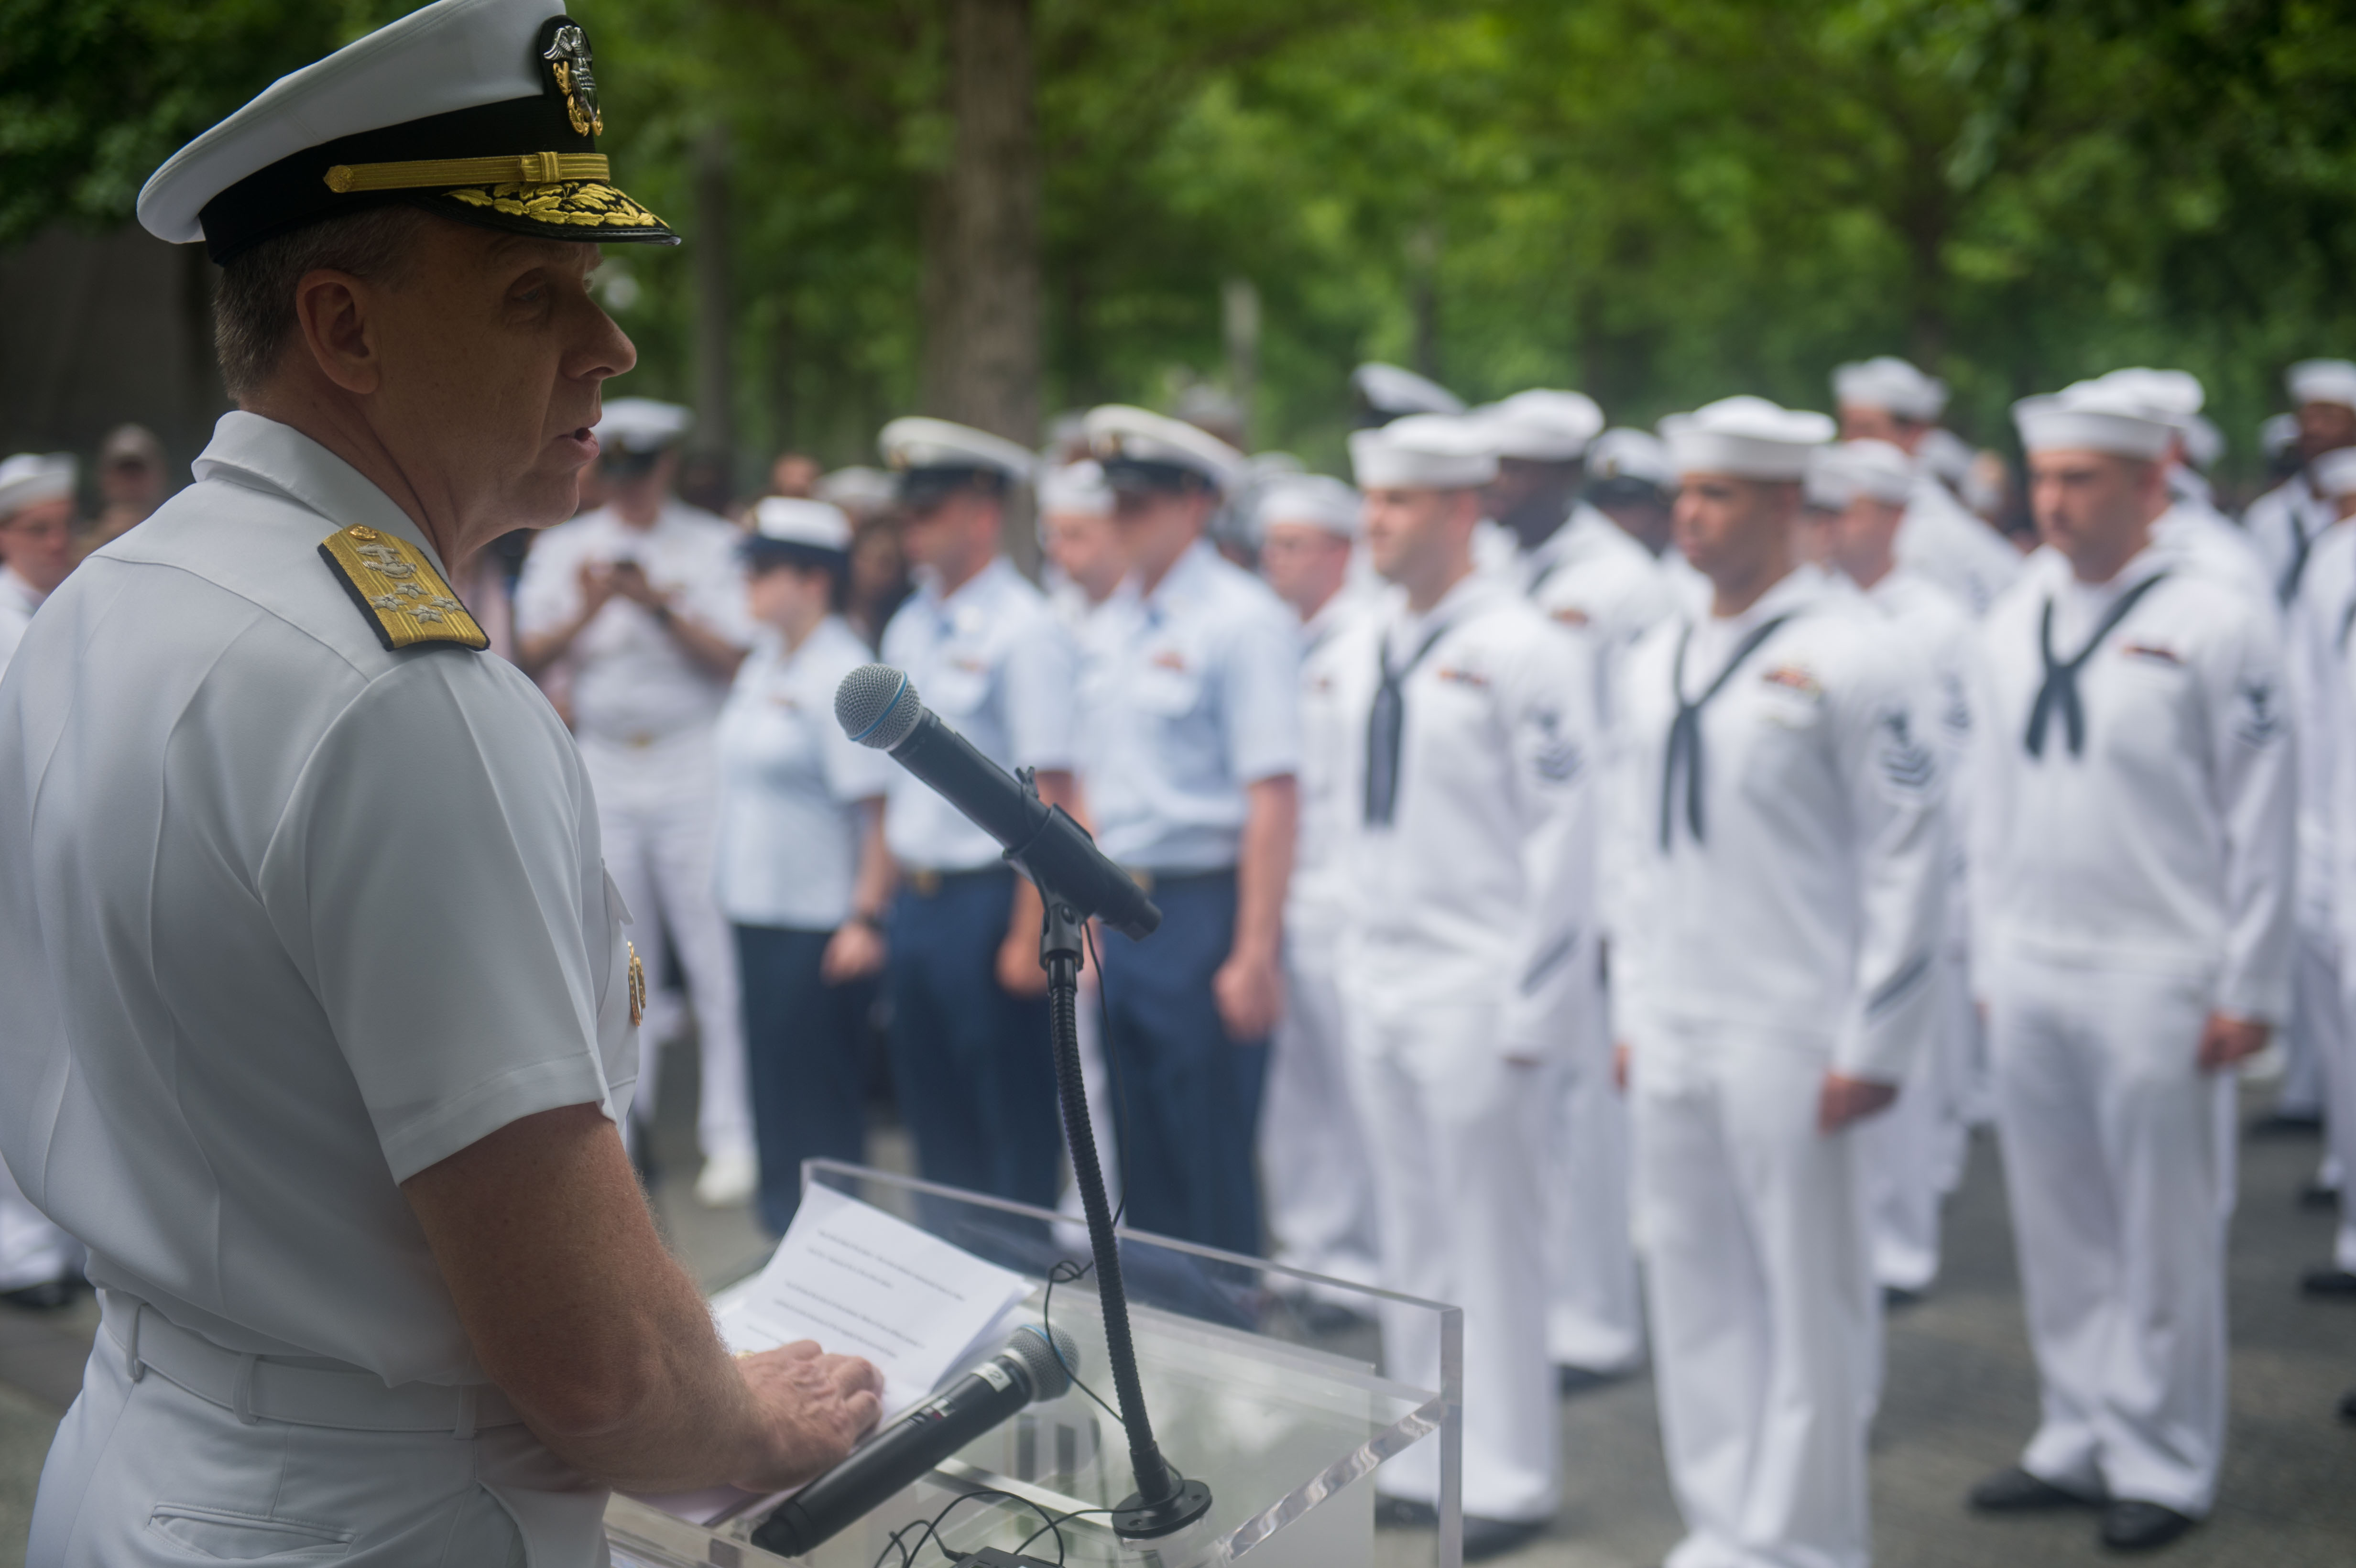 Sailor stands listening to the speech